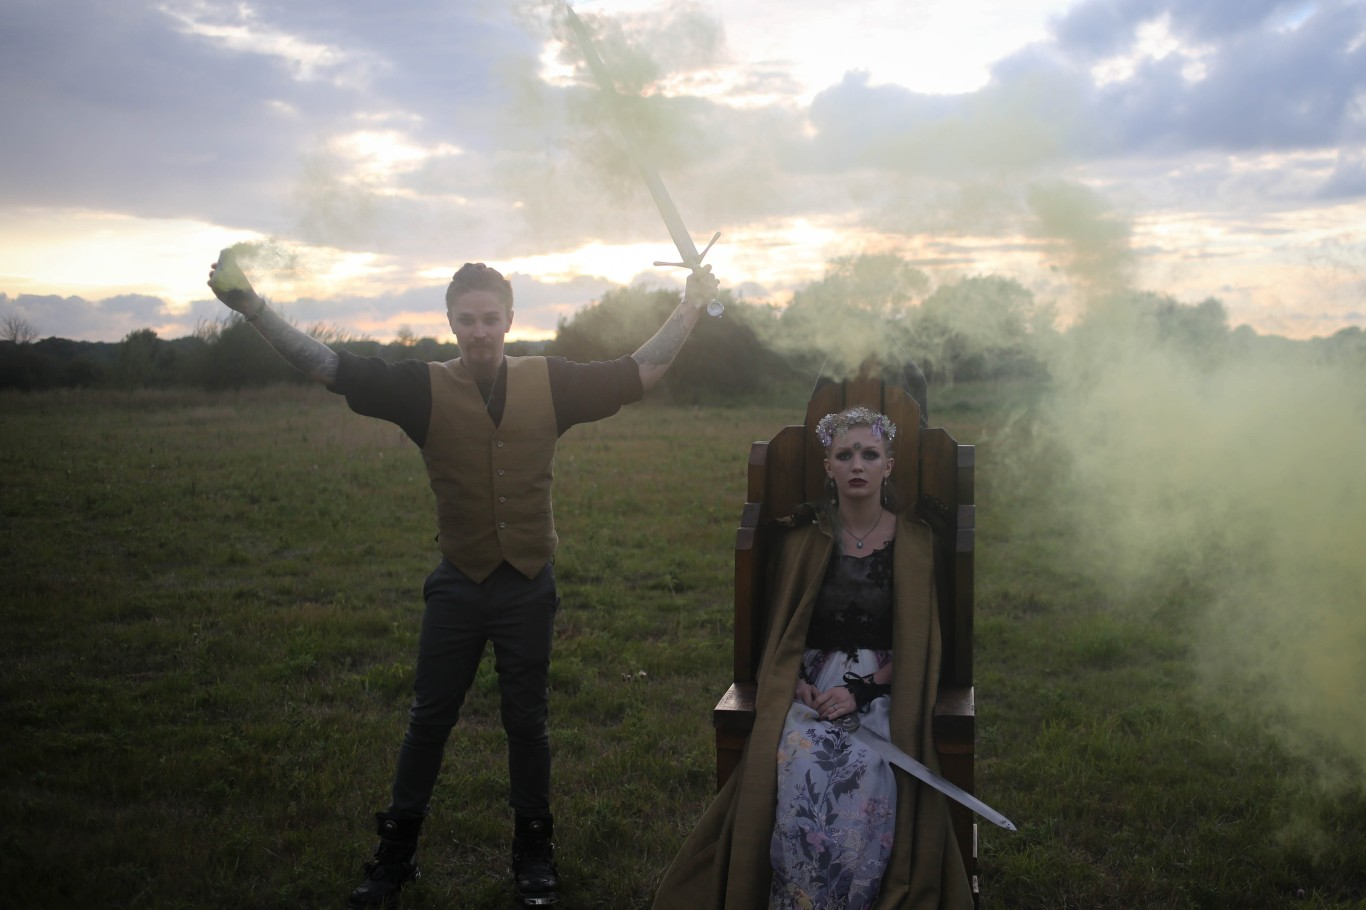 nature wedding - pagan wedding - ethereal wedding - spiritual wedding - alternative wedding - mystical wedding - quirky wedding - Britannia wedding - wedding smoke bomb